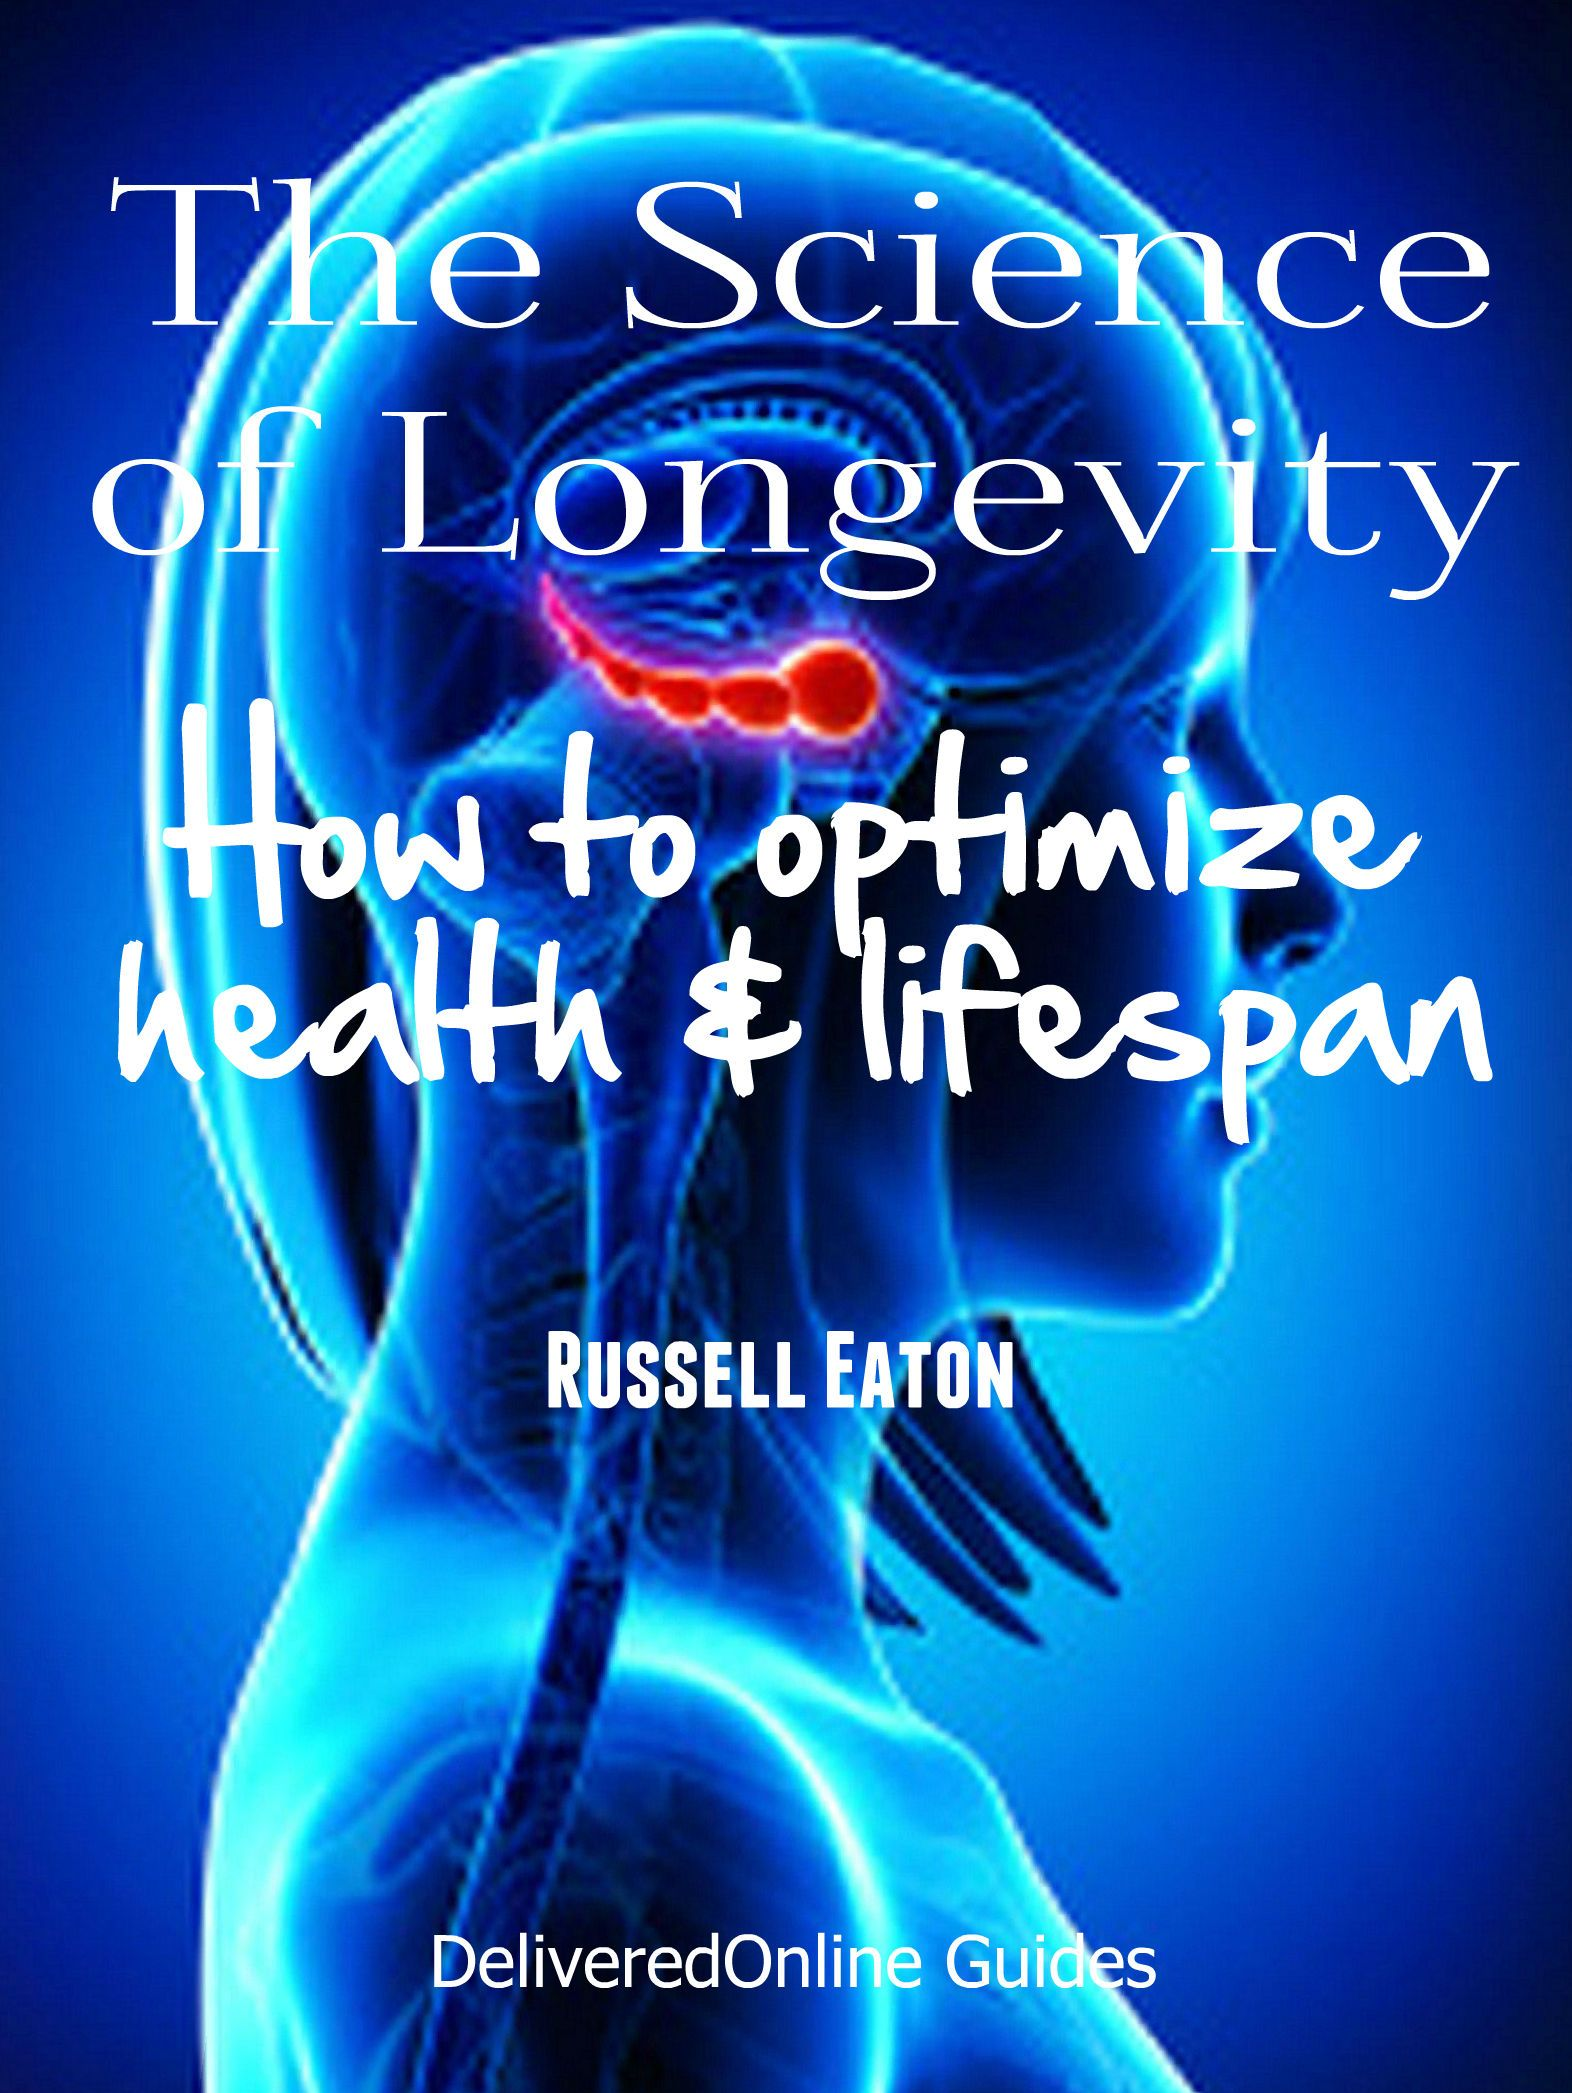 The Science of Longevity: How to Optimize Health and Life Span